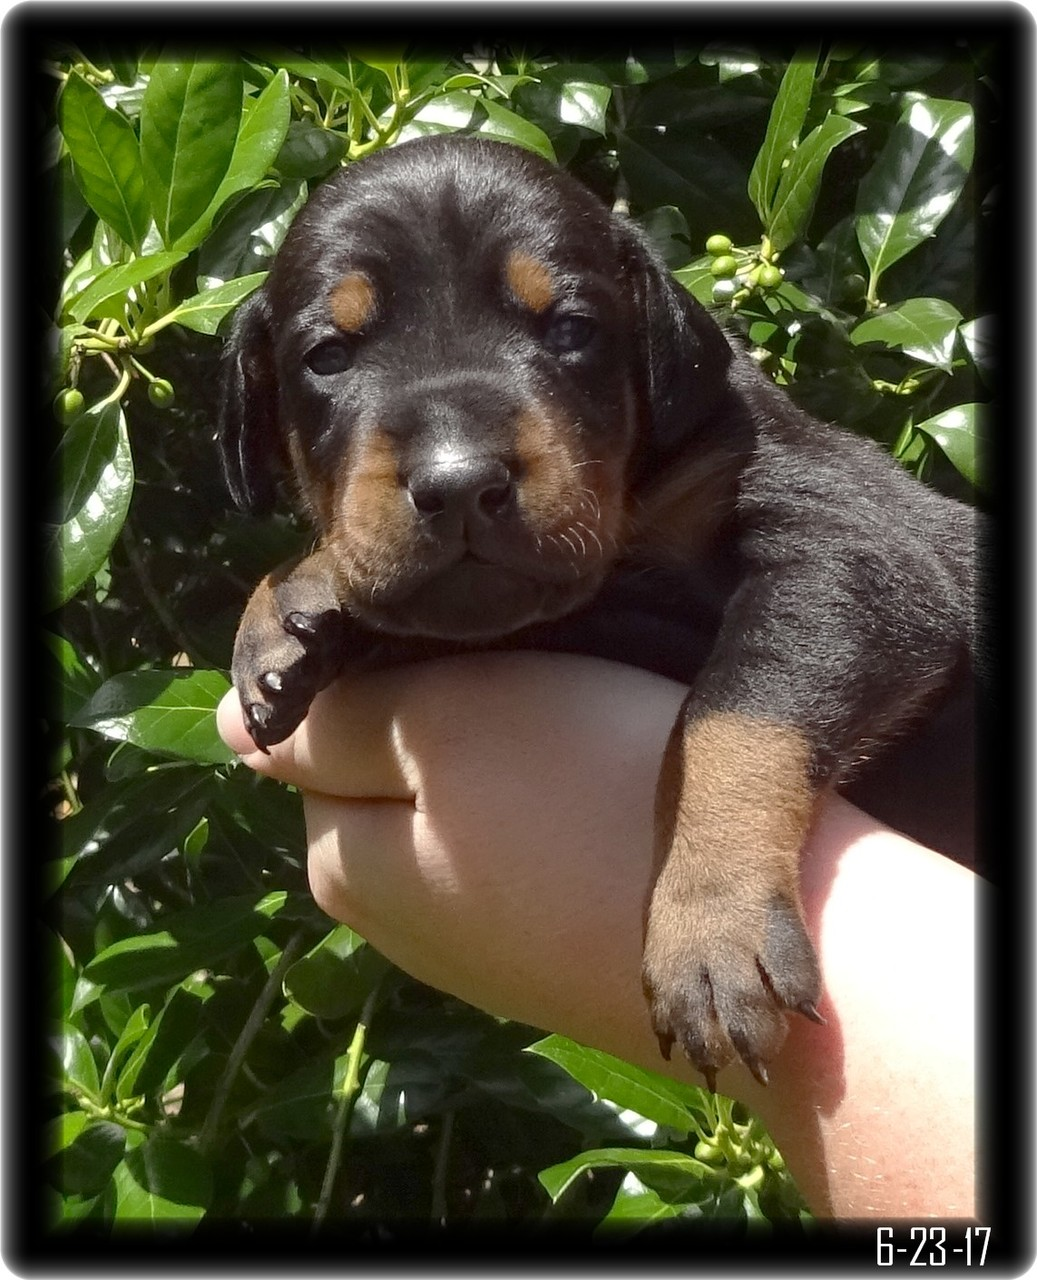 """Little Girl - well not sure what """"little Girl"""" was thinking. This was her first time out for photos since she opened her eyes. But from body English she let us know """"WHAT EVER"""" was the thought of the moment."""